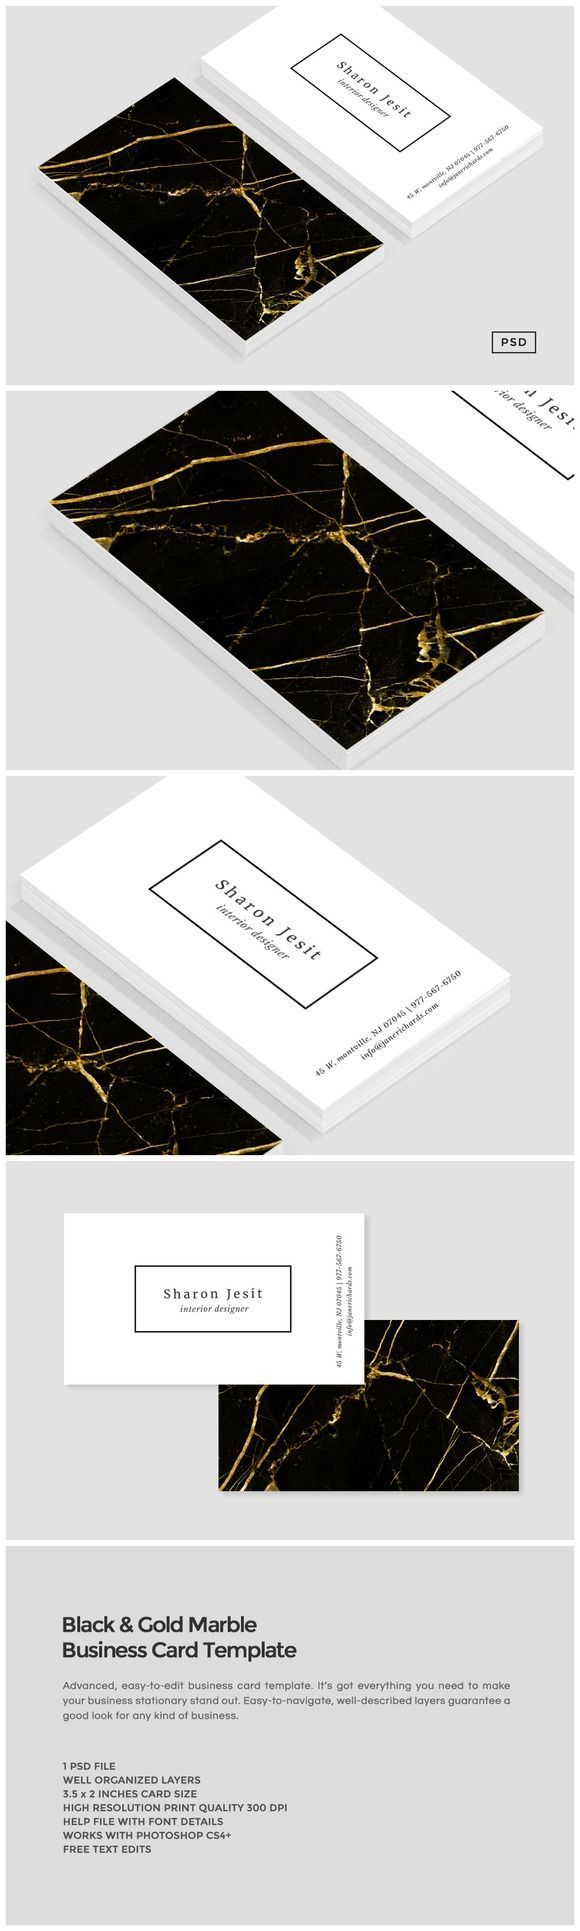 189 best creative business cards images on pinterest creative 189 best creative business cards images on pinterest creative business cards business tips and business marketing reheart